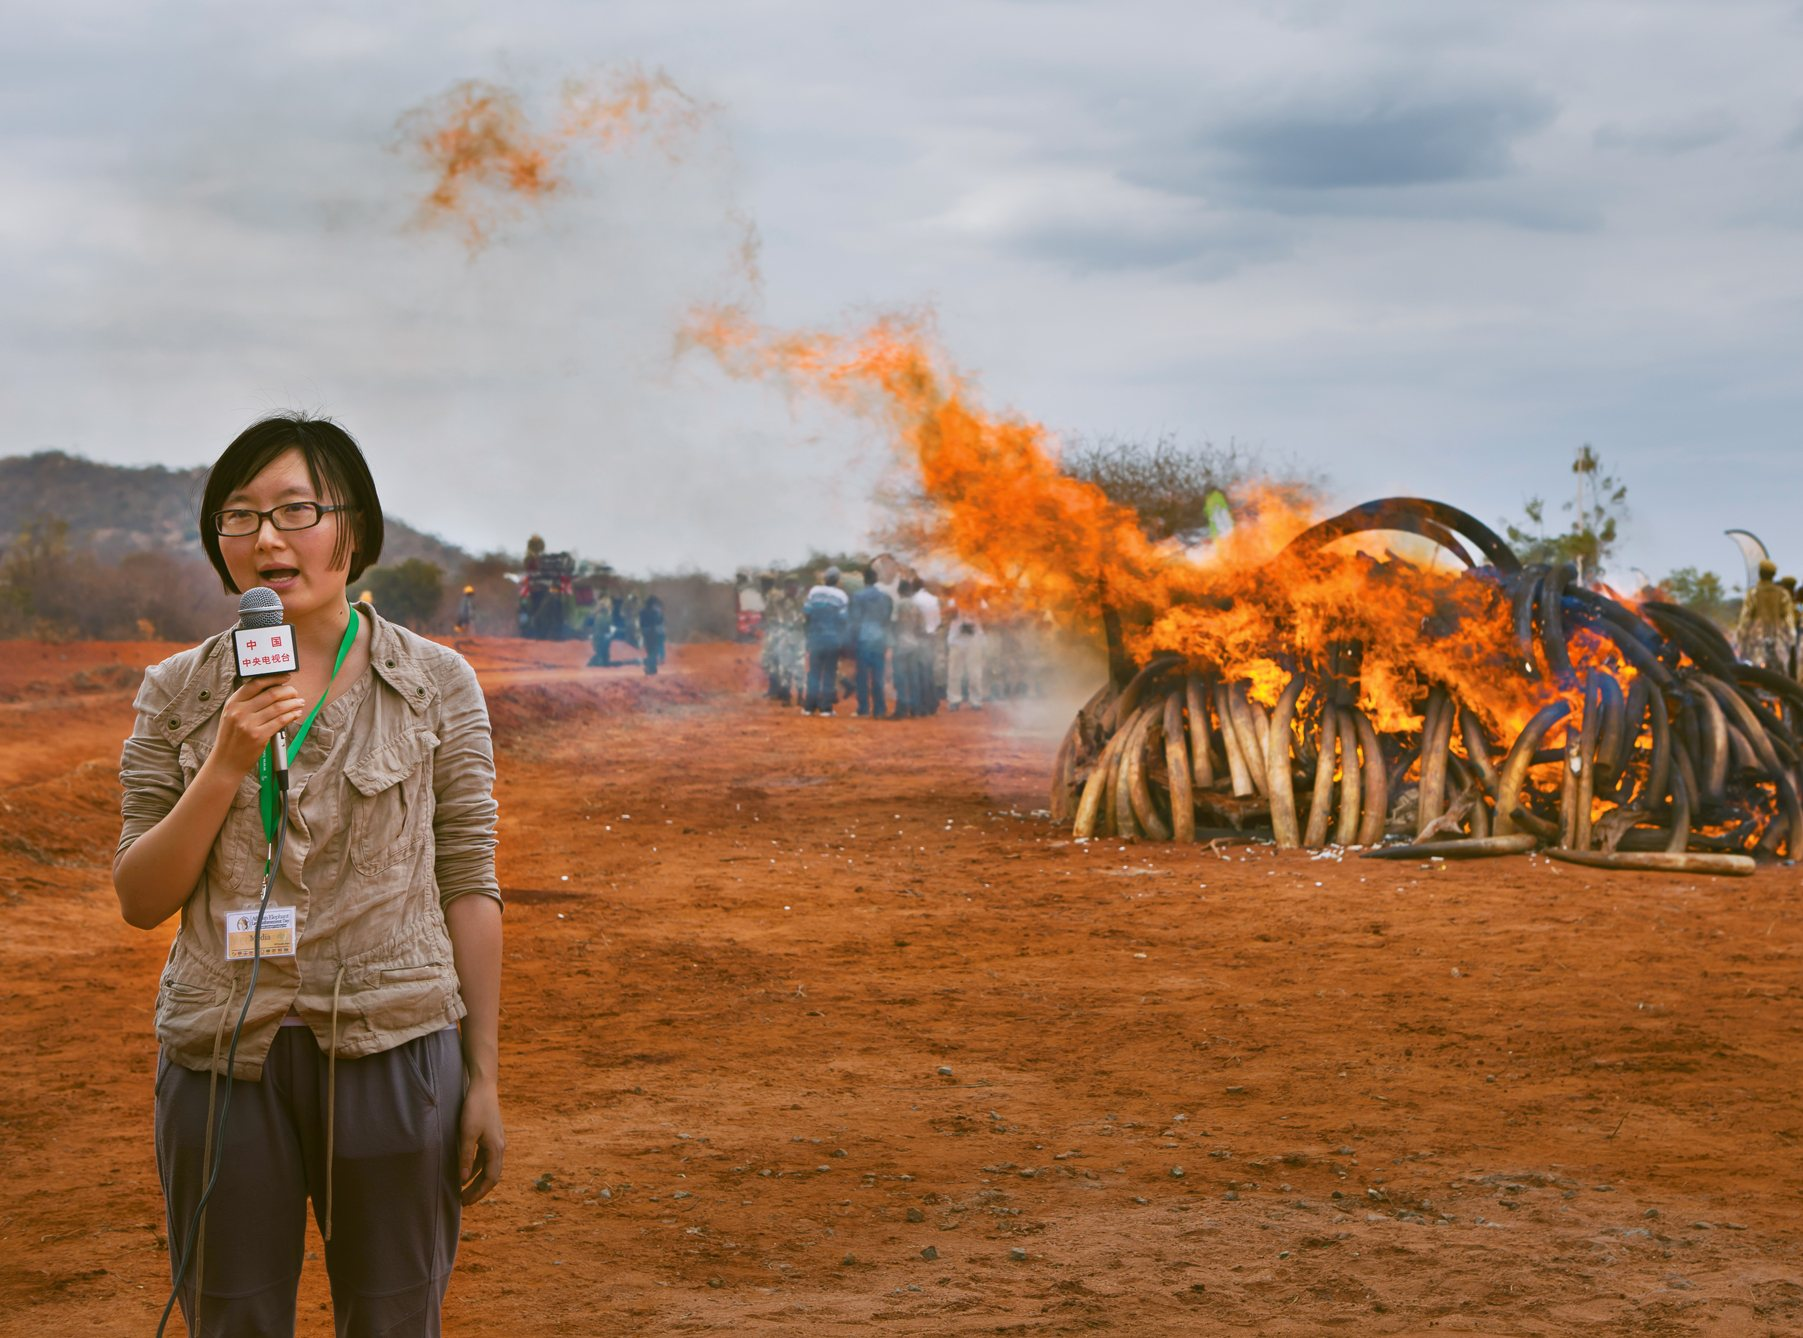 09-chinese-reporter-in-kenya. Políticas arbitrarias